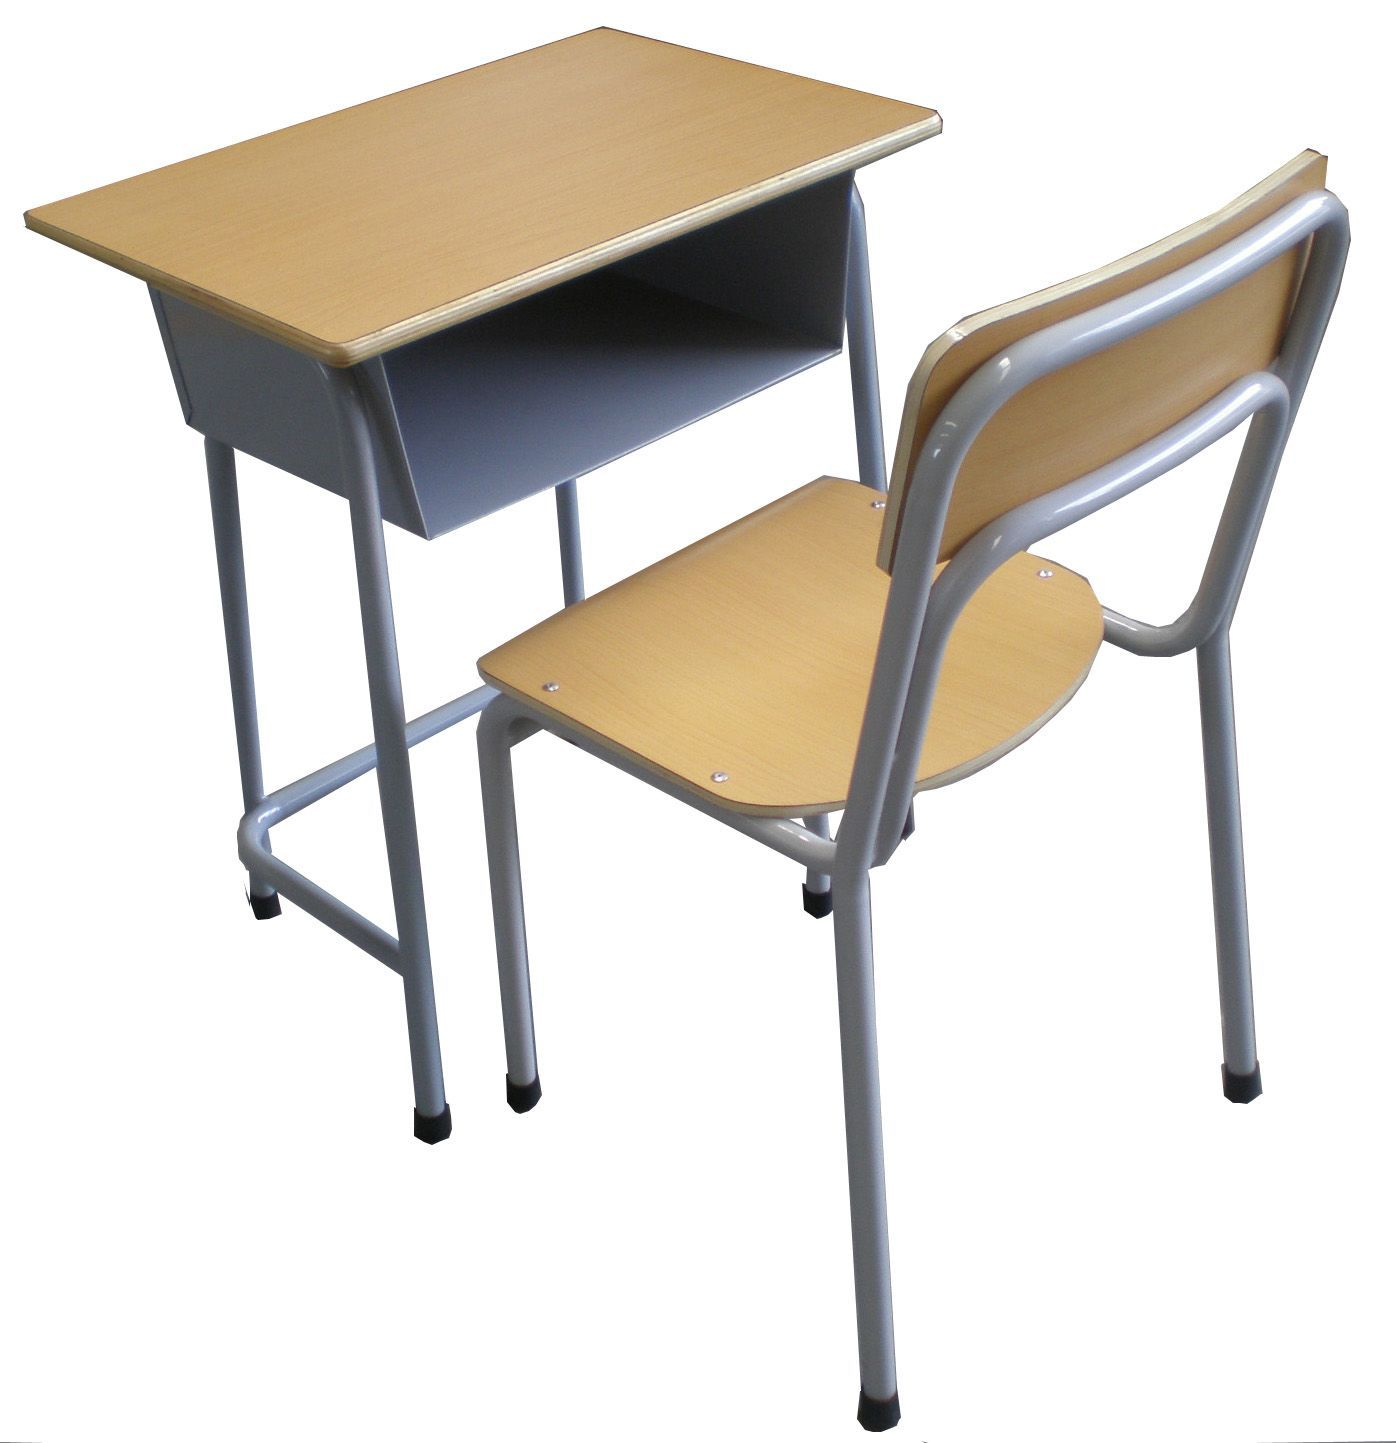 Student Desk Drawing at GetDrawings com   Free for personal use     1396x1443 Desk Negative The desk symbolizes a barrier  Mrs  Price put the